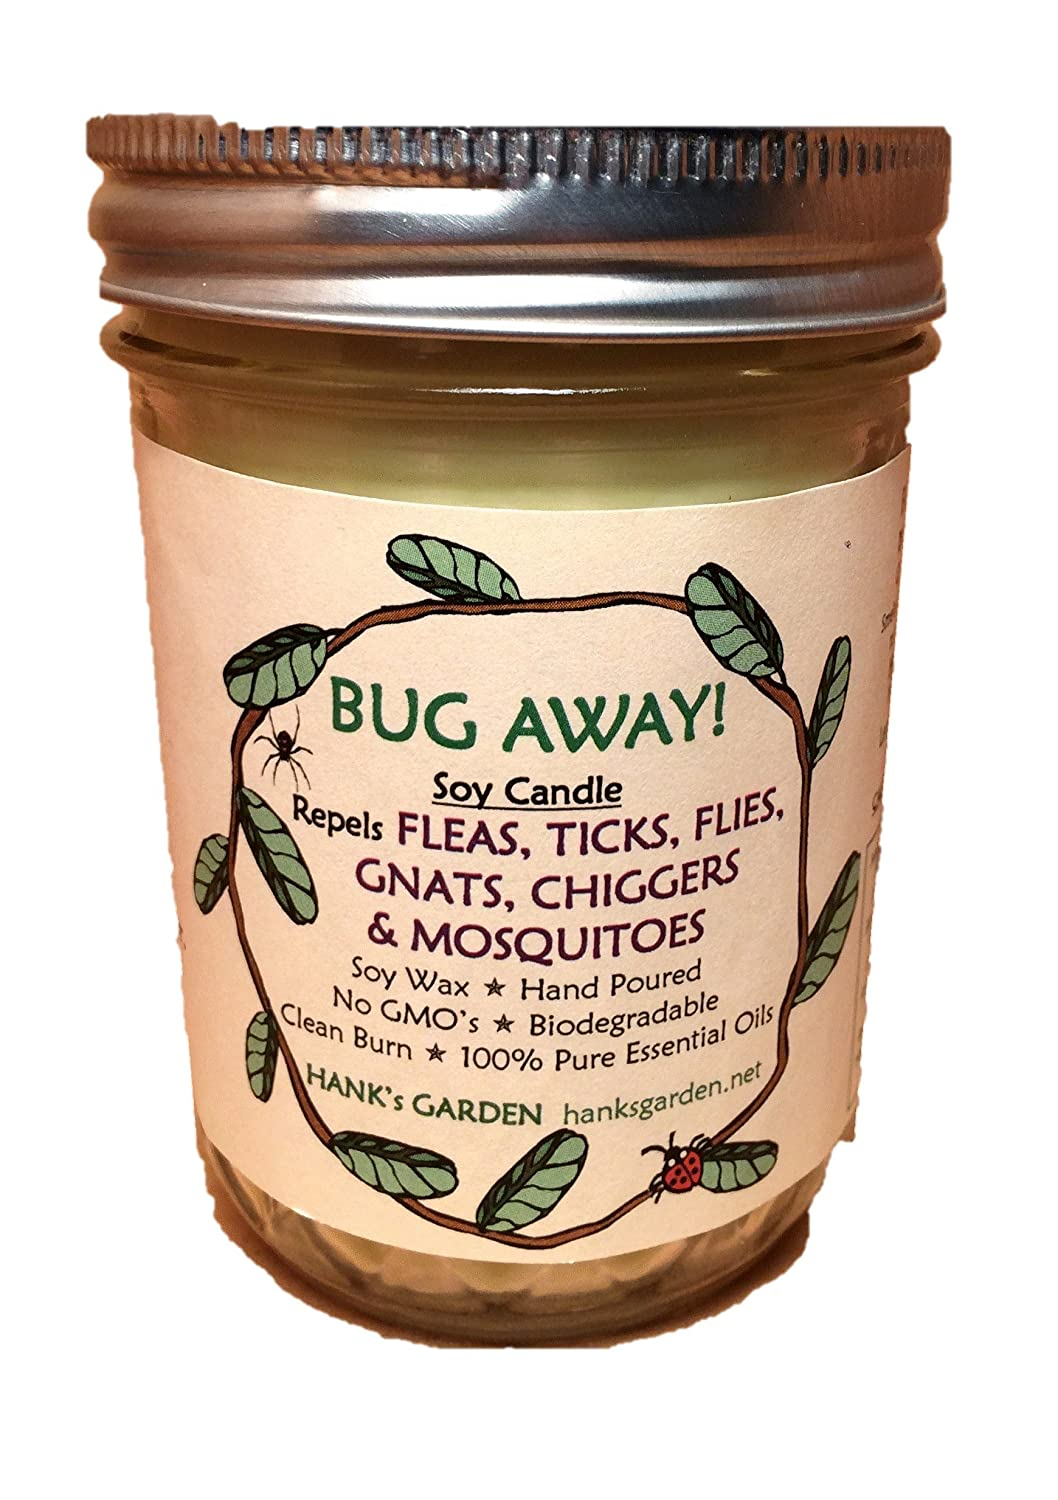 BUG AWAY! Soy Candle - Repels CHIGGERS, GNATS, FLIES, TICKS, MOSQUITOES, FLEAS - Natural Wax, Wicks and Dyes - Non GMO - No DEET - 8 oz / 118.3 ml Jar Hank's Garden